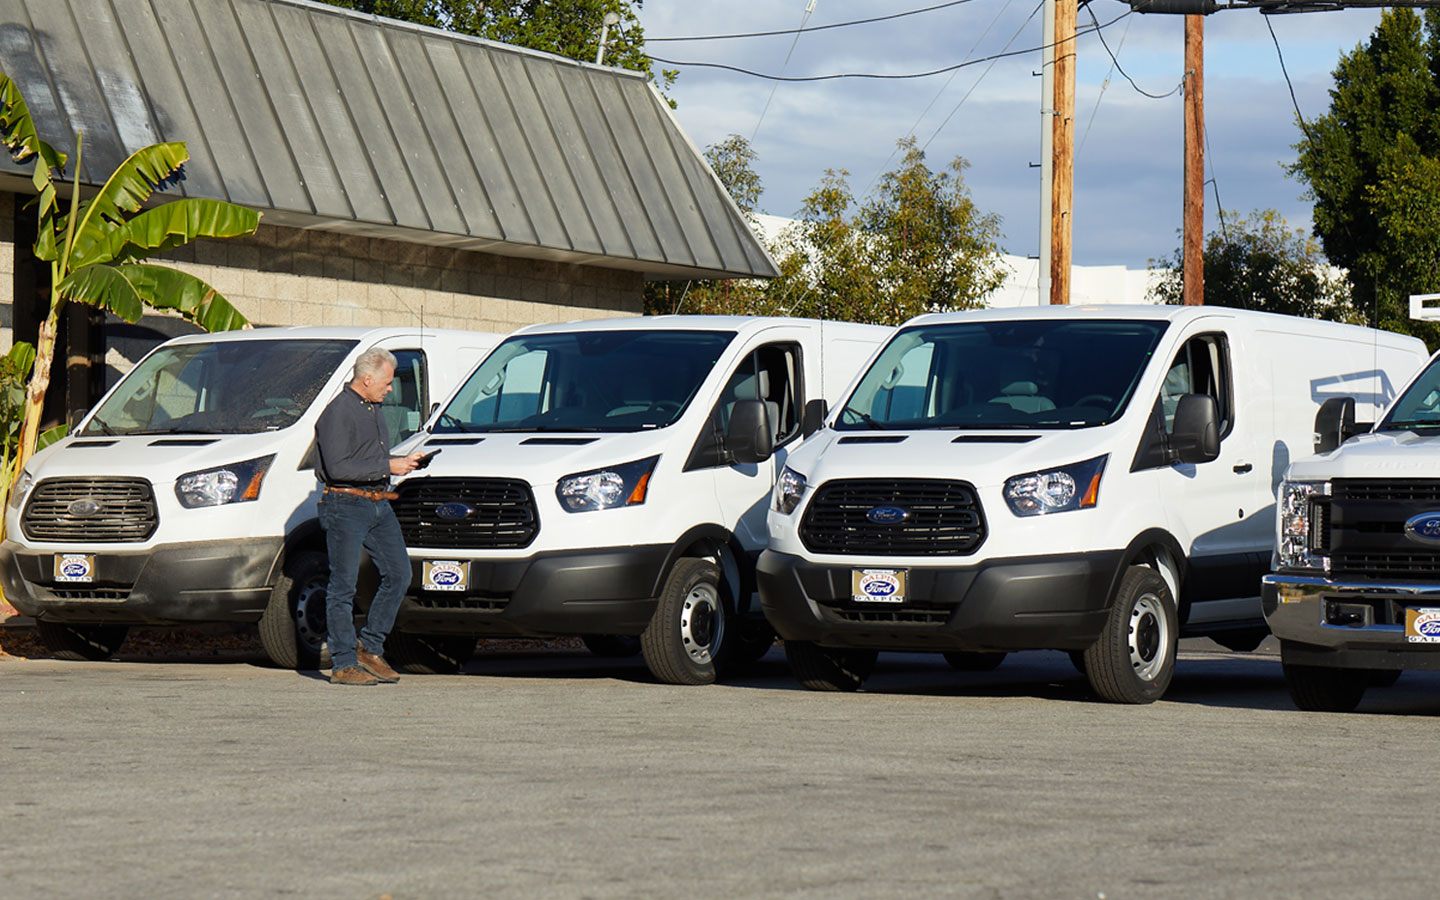 Improve fleet safety with vehicle inspection history